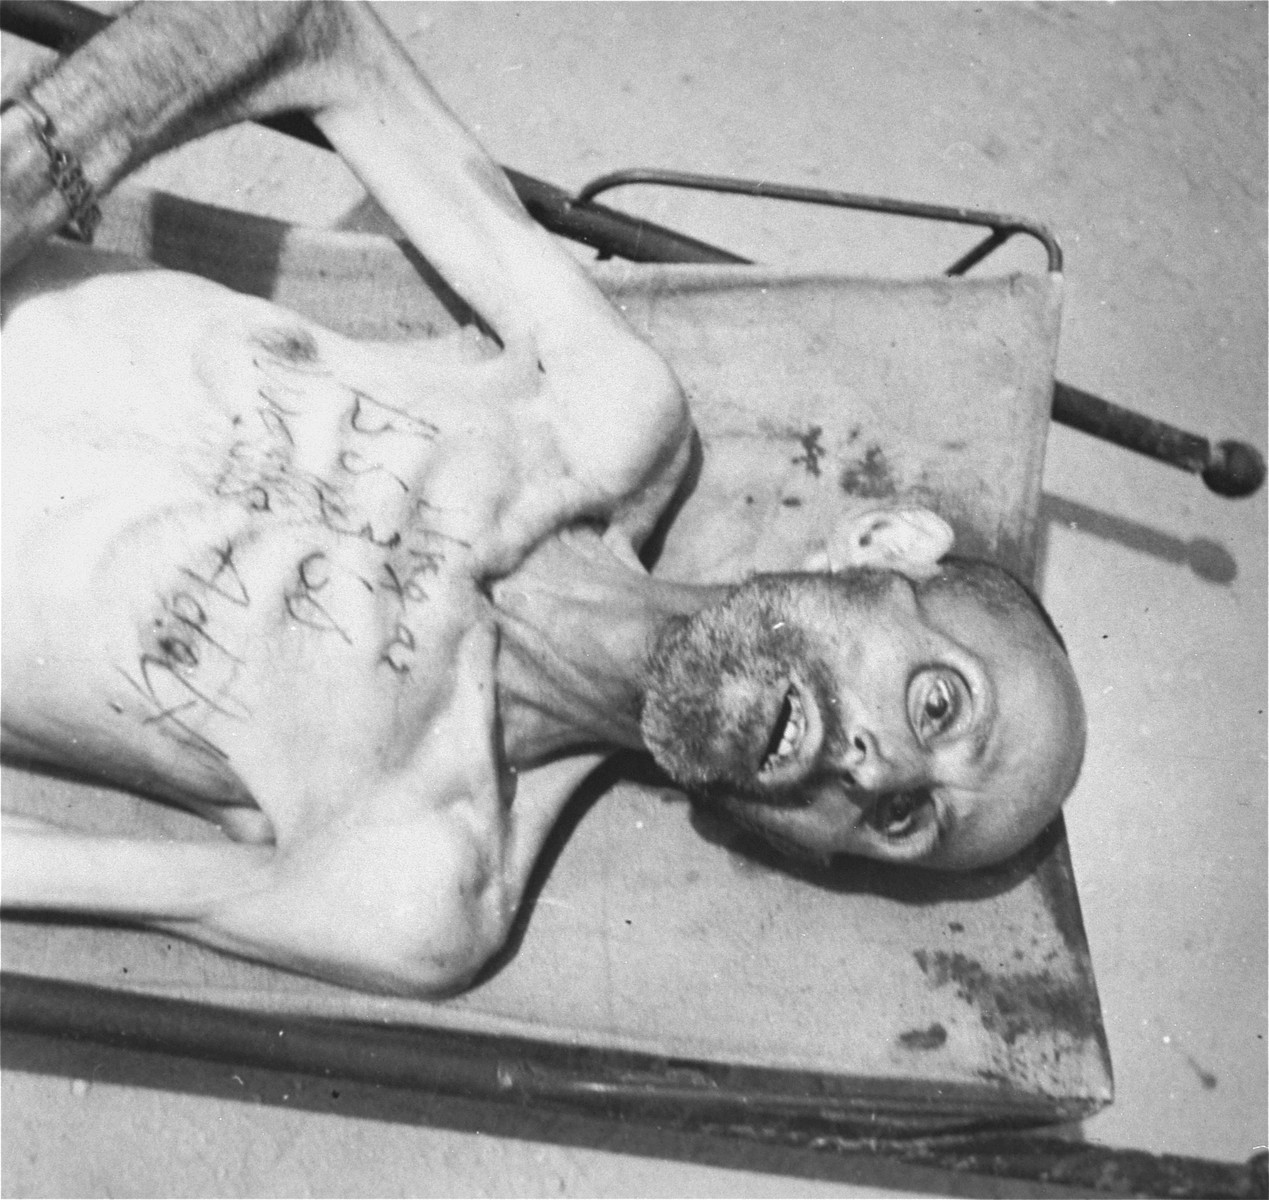 A dead Jewish prisoner from Hungary, whose prisoner number and name were written on his chest in ink, lies on a stretcher.